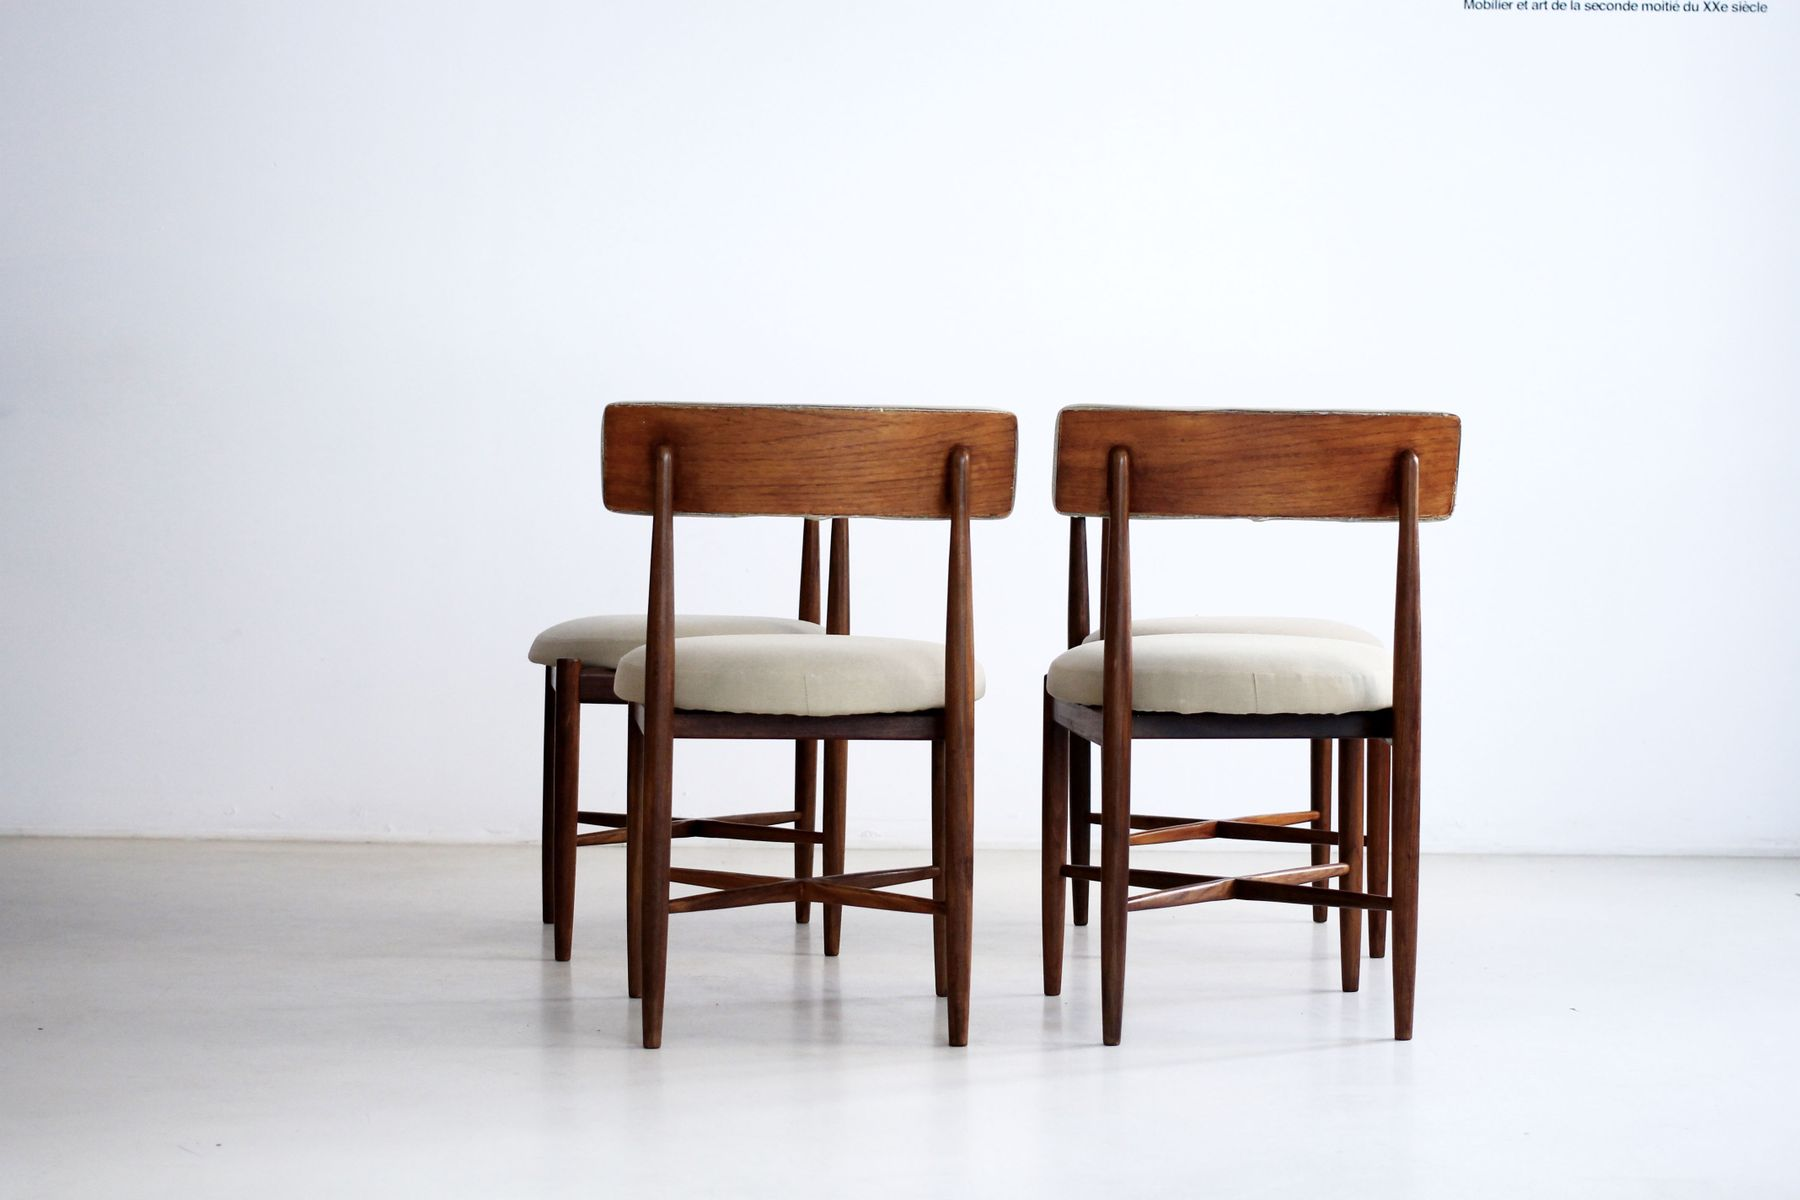 Scandinavian dining chairs from g plan set of 4 1960s for G plan dining room chairs